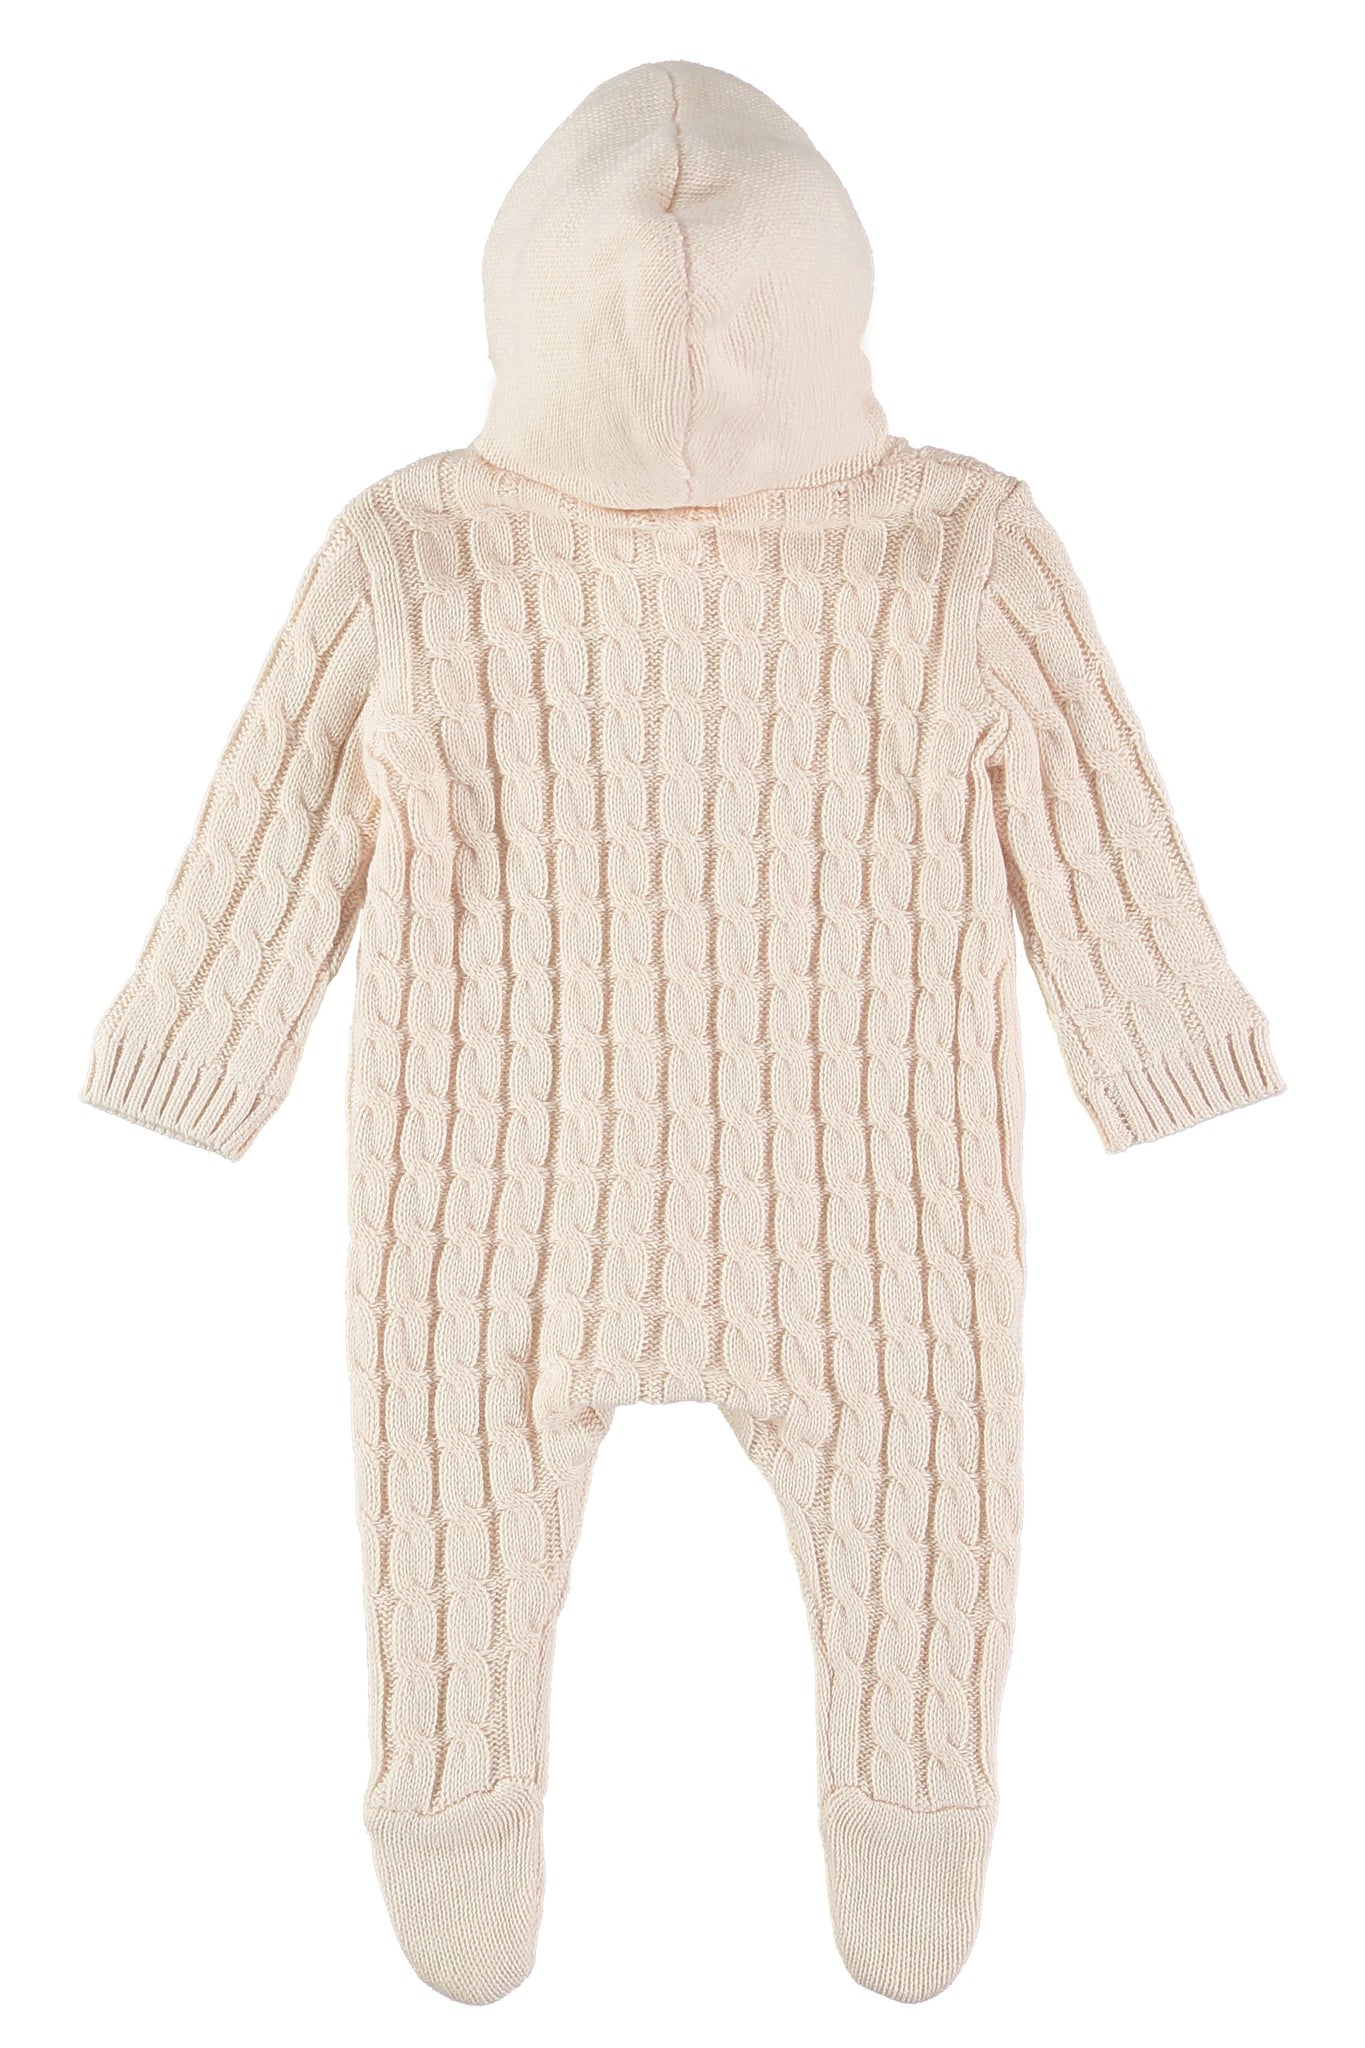 Soft Pink Lined Knitted Pramsuit